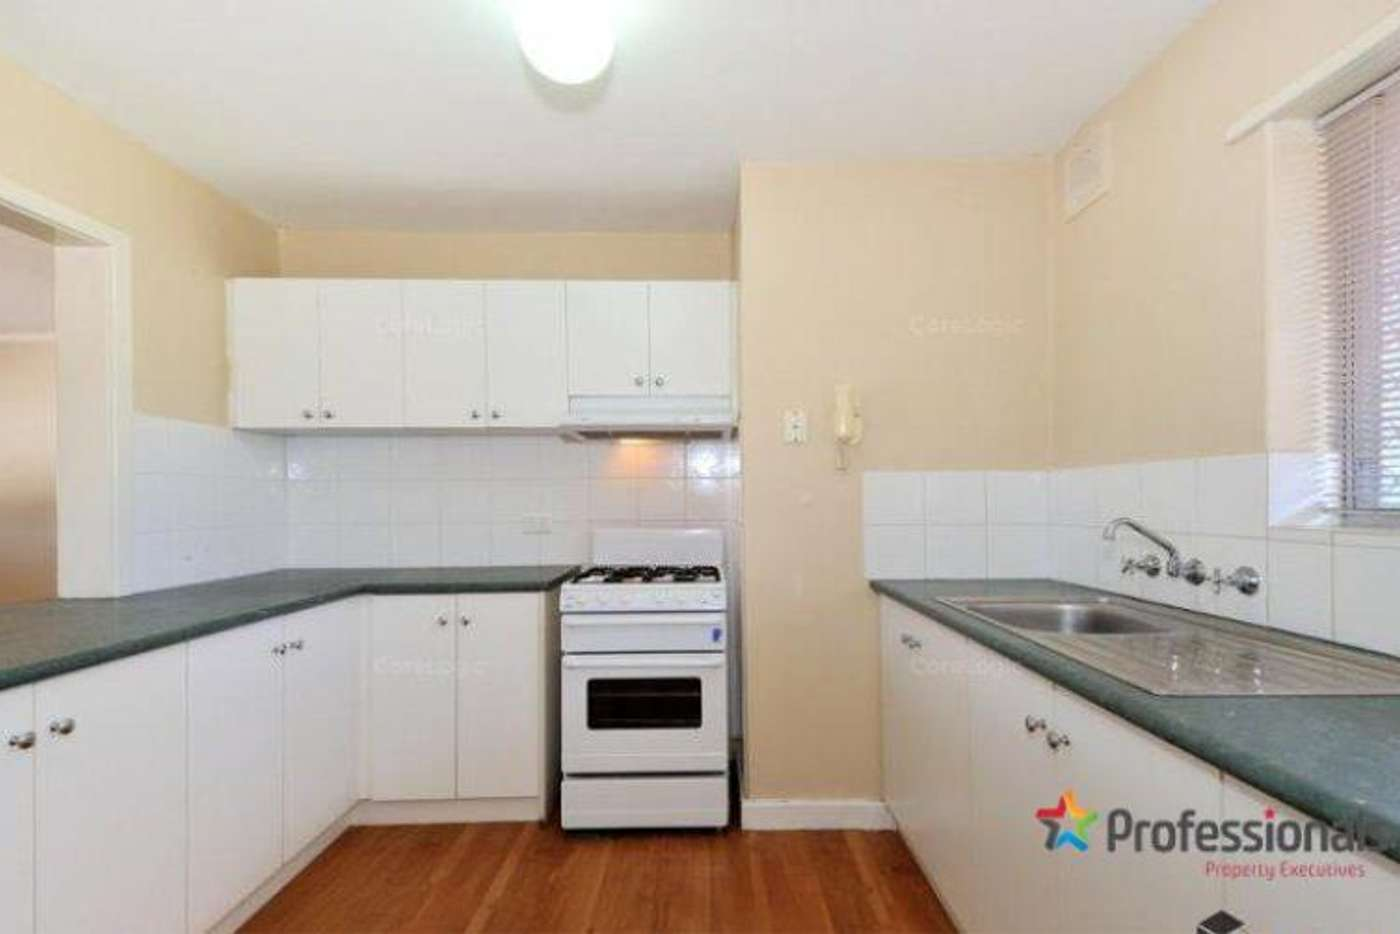 Main view of Homely apartment listing, 14/21 Disney Road, Parmelia WA 6167